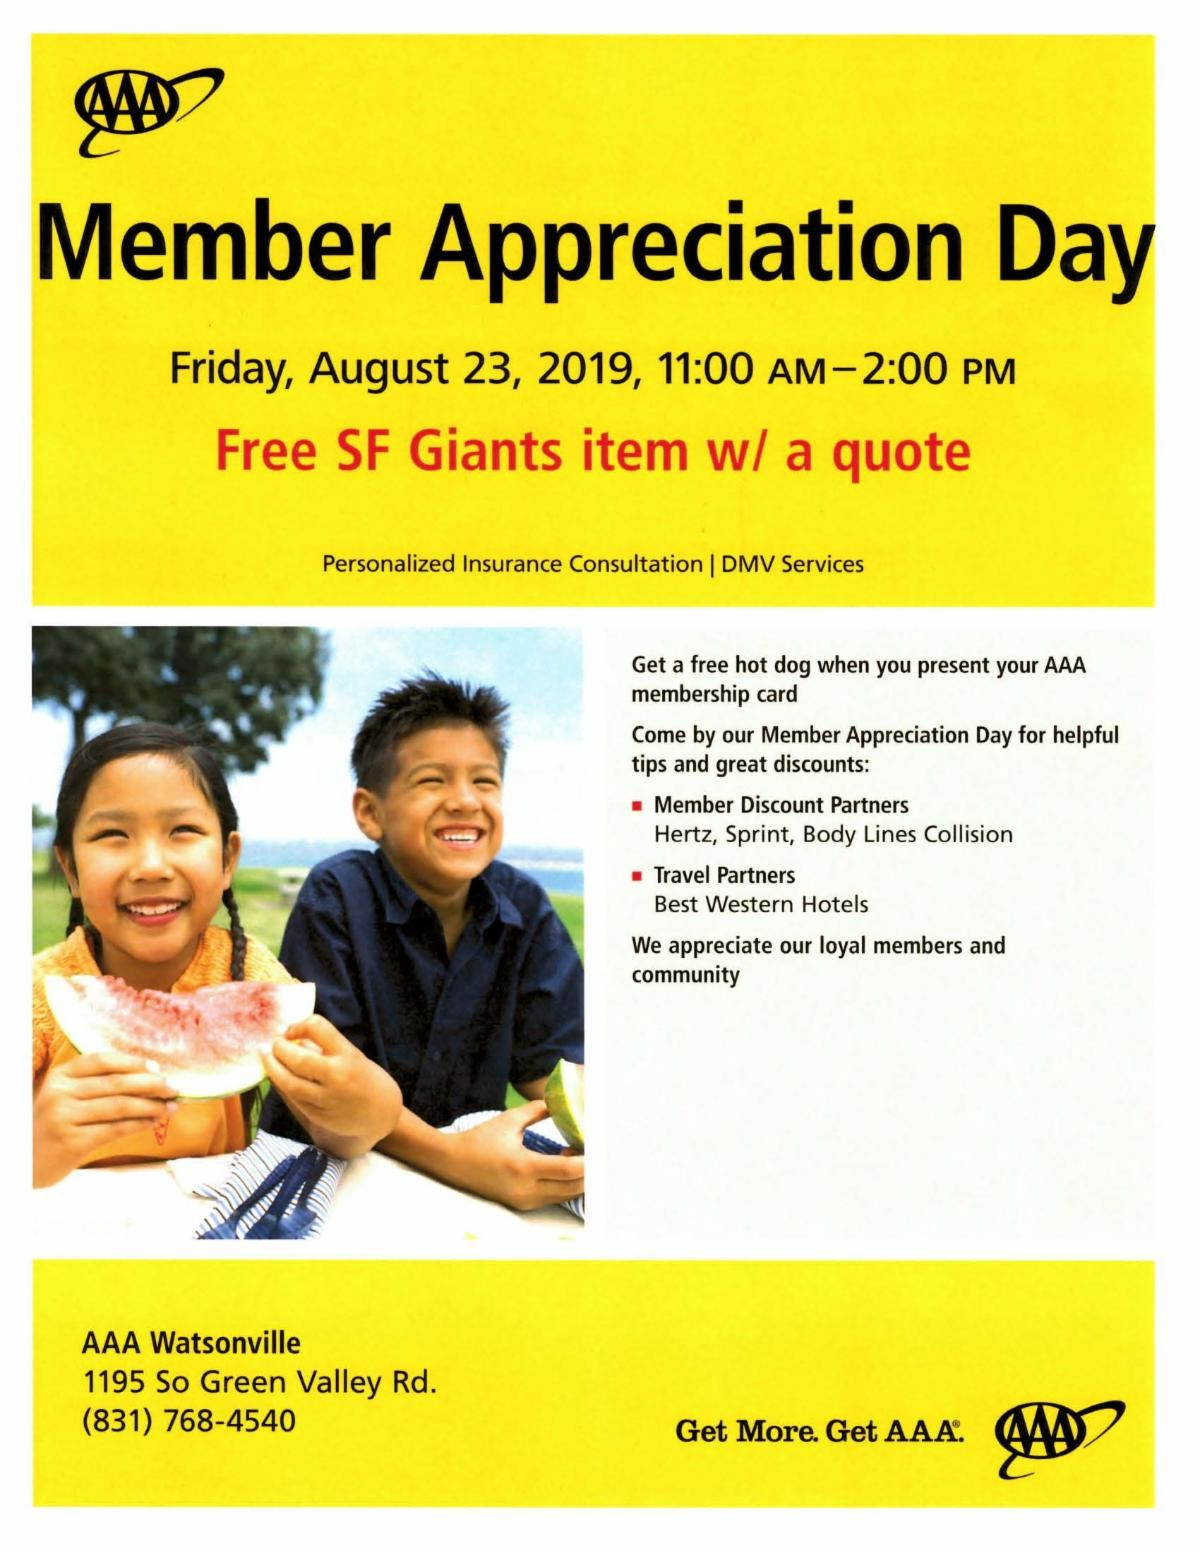 Member Appreciation Day - Pajaro Valley Chamber of Commerce